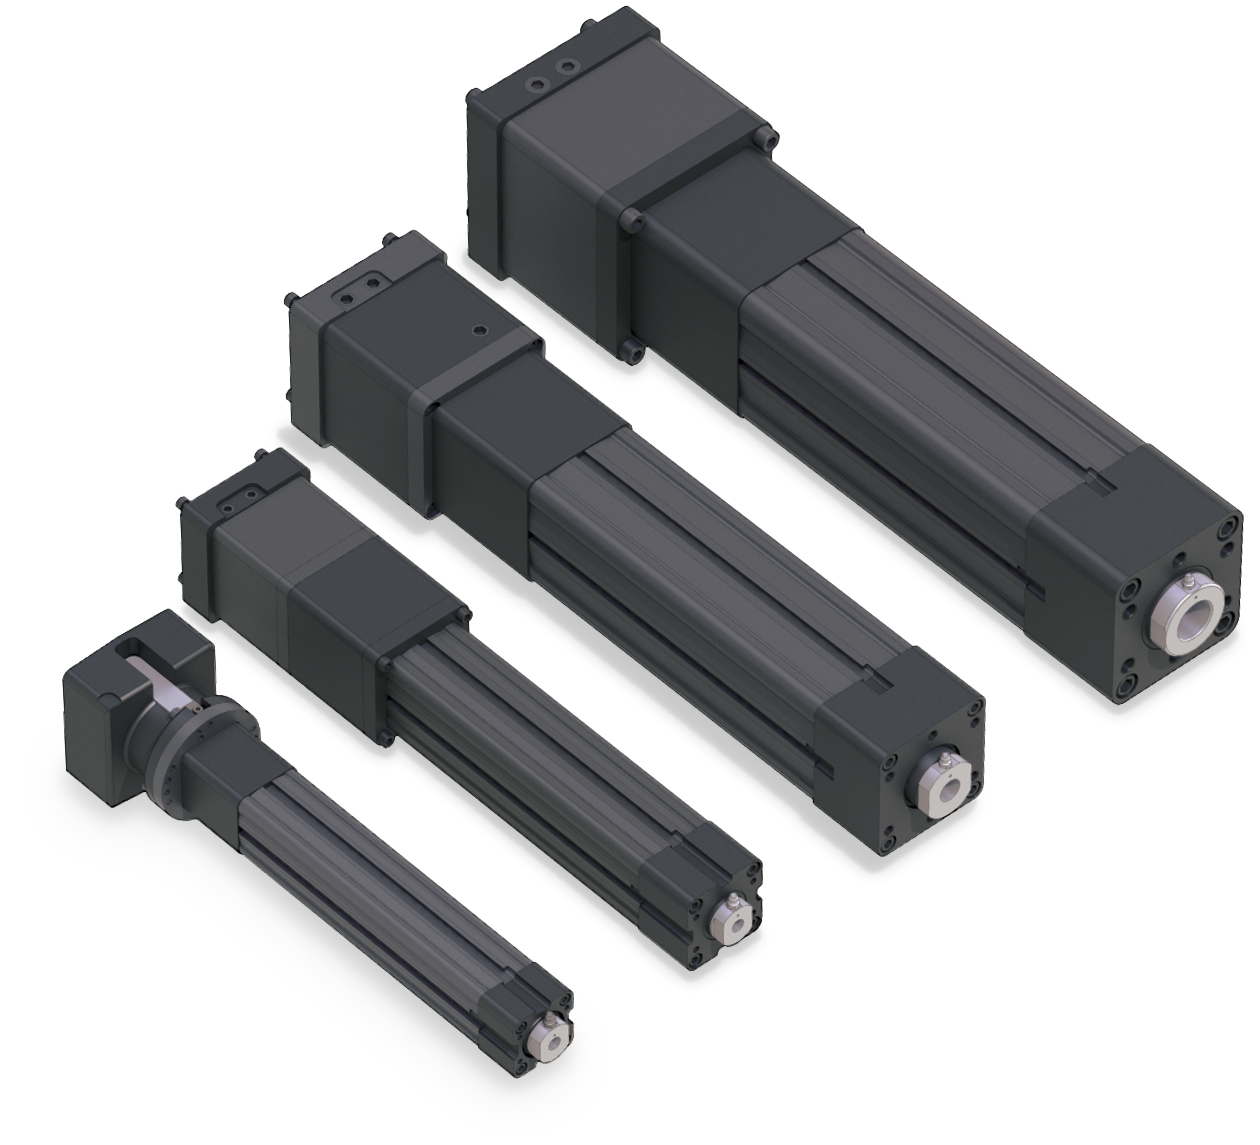 Tolomatic RSA-HT Heavy Duty, High Force Electric Rod Actuators